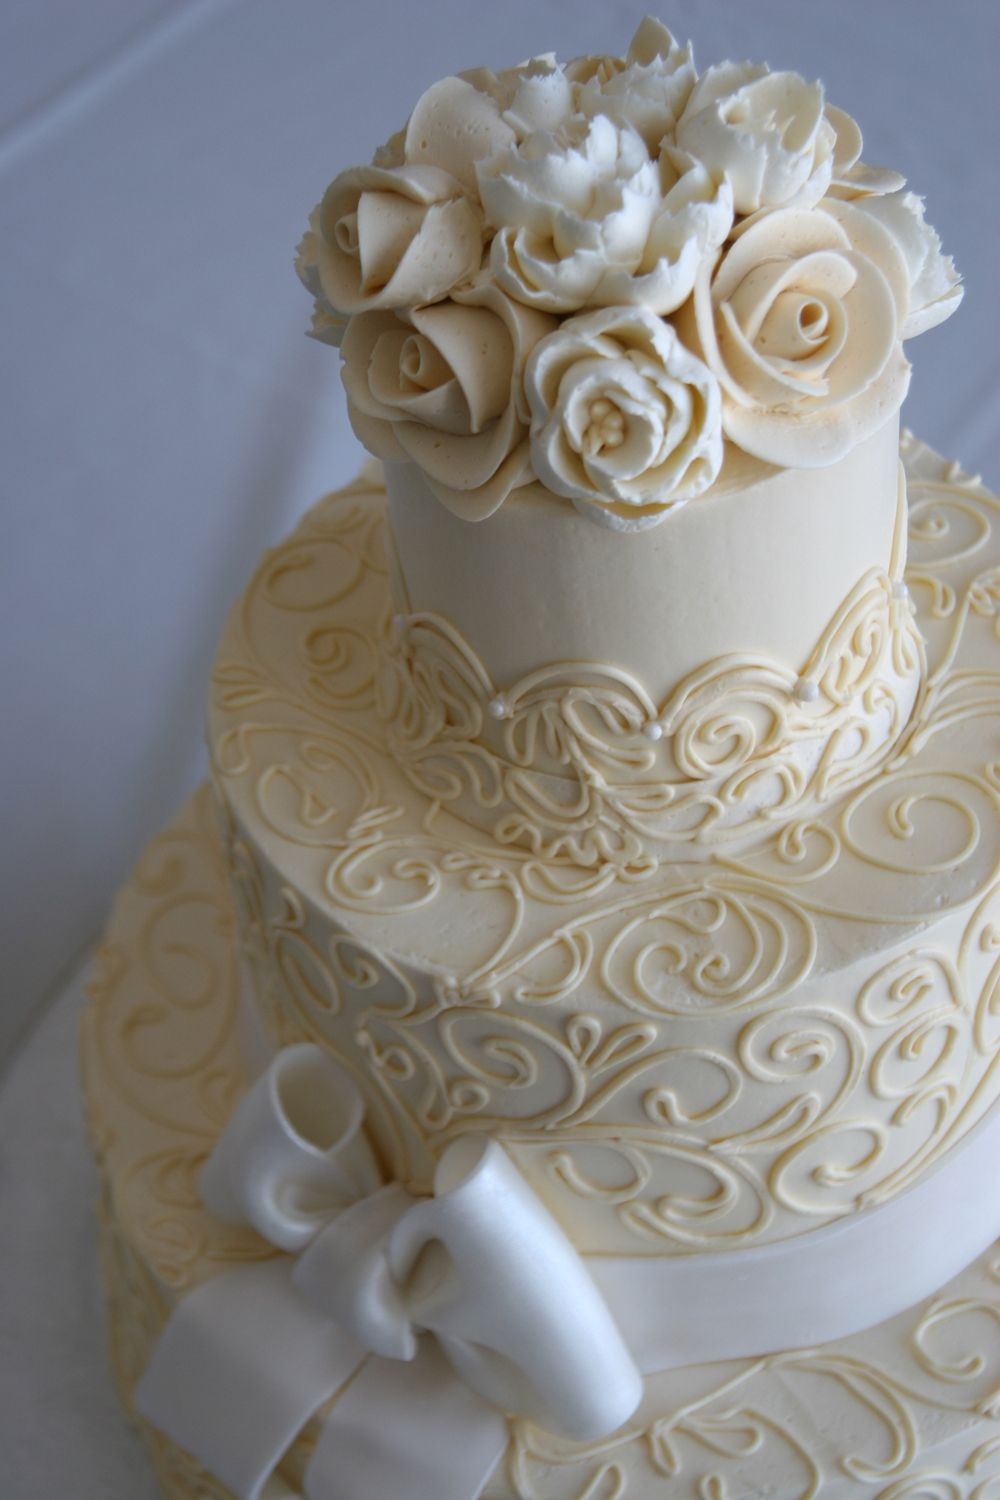 Buttercream Vintage Wedding Cakes For Favorite Cakes Of The